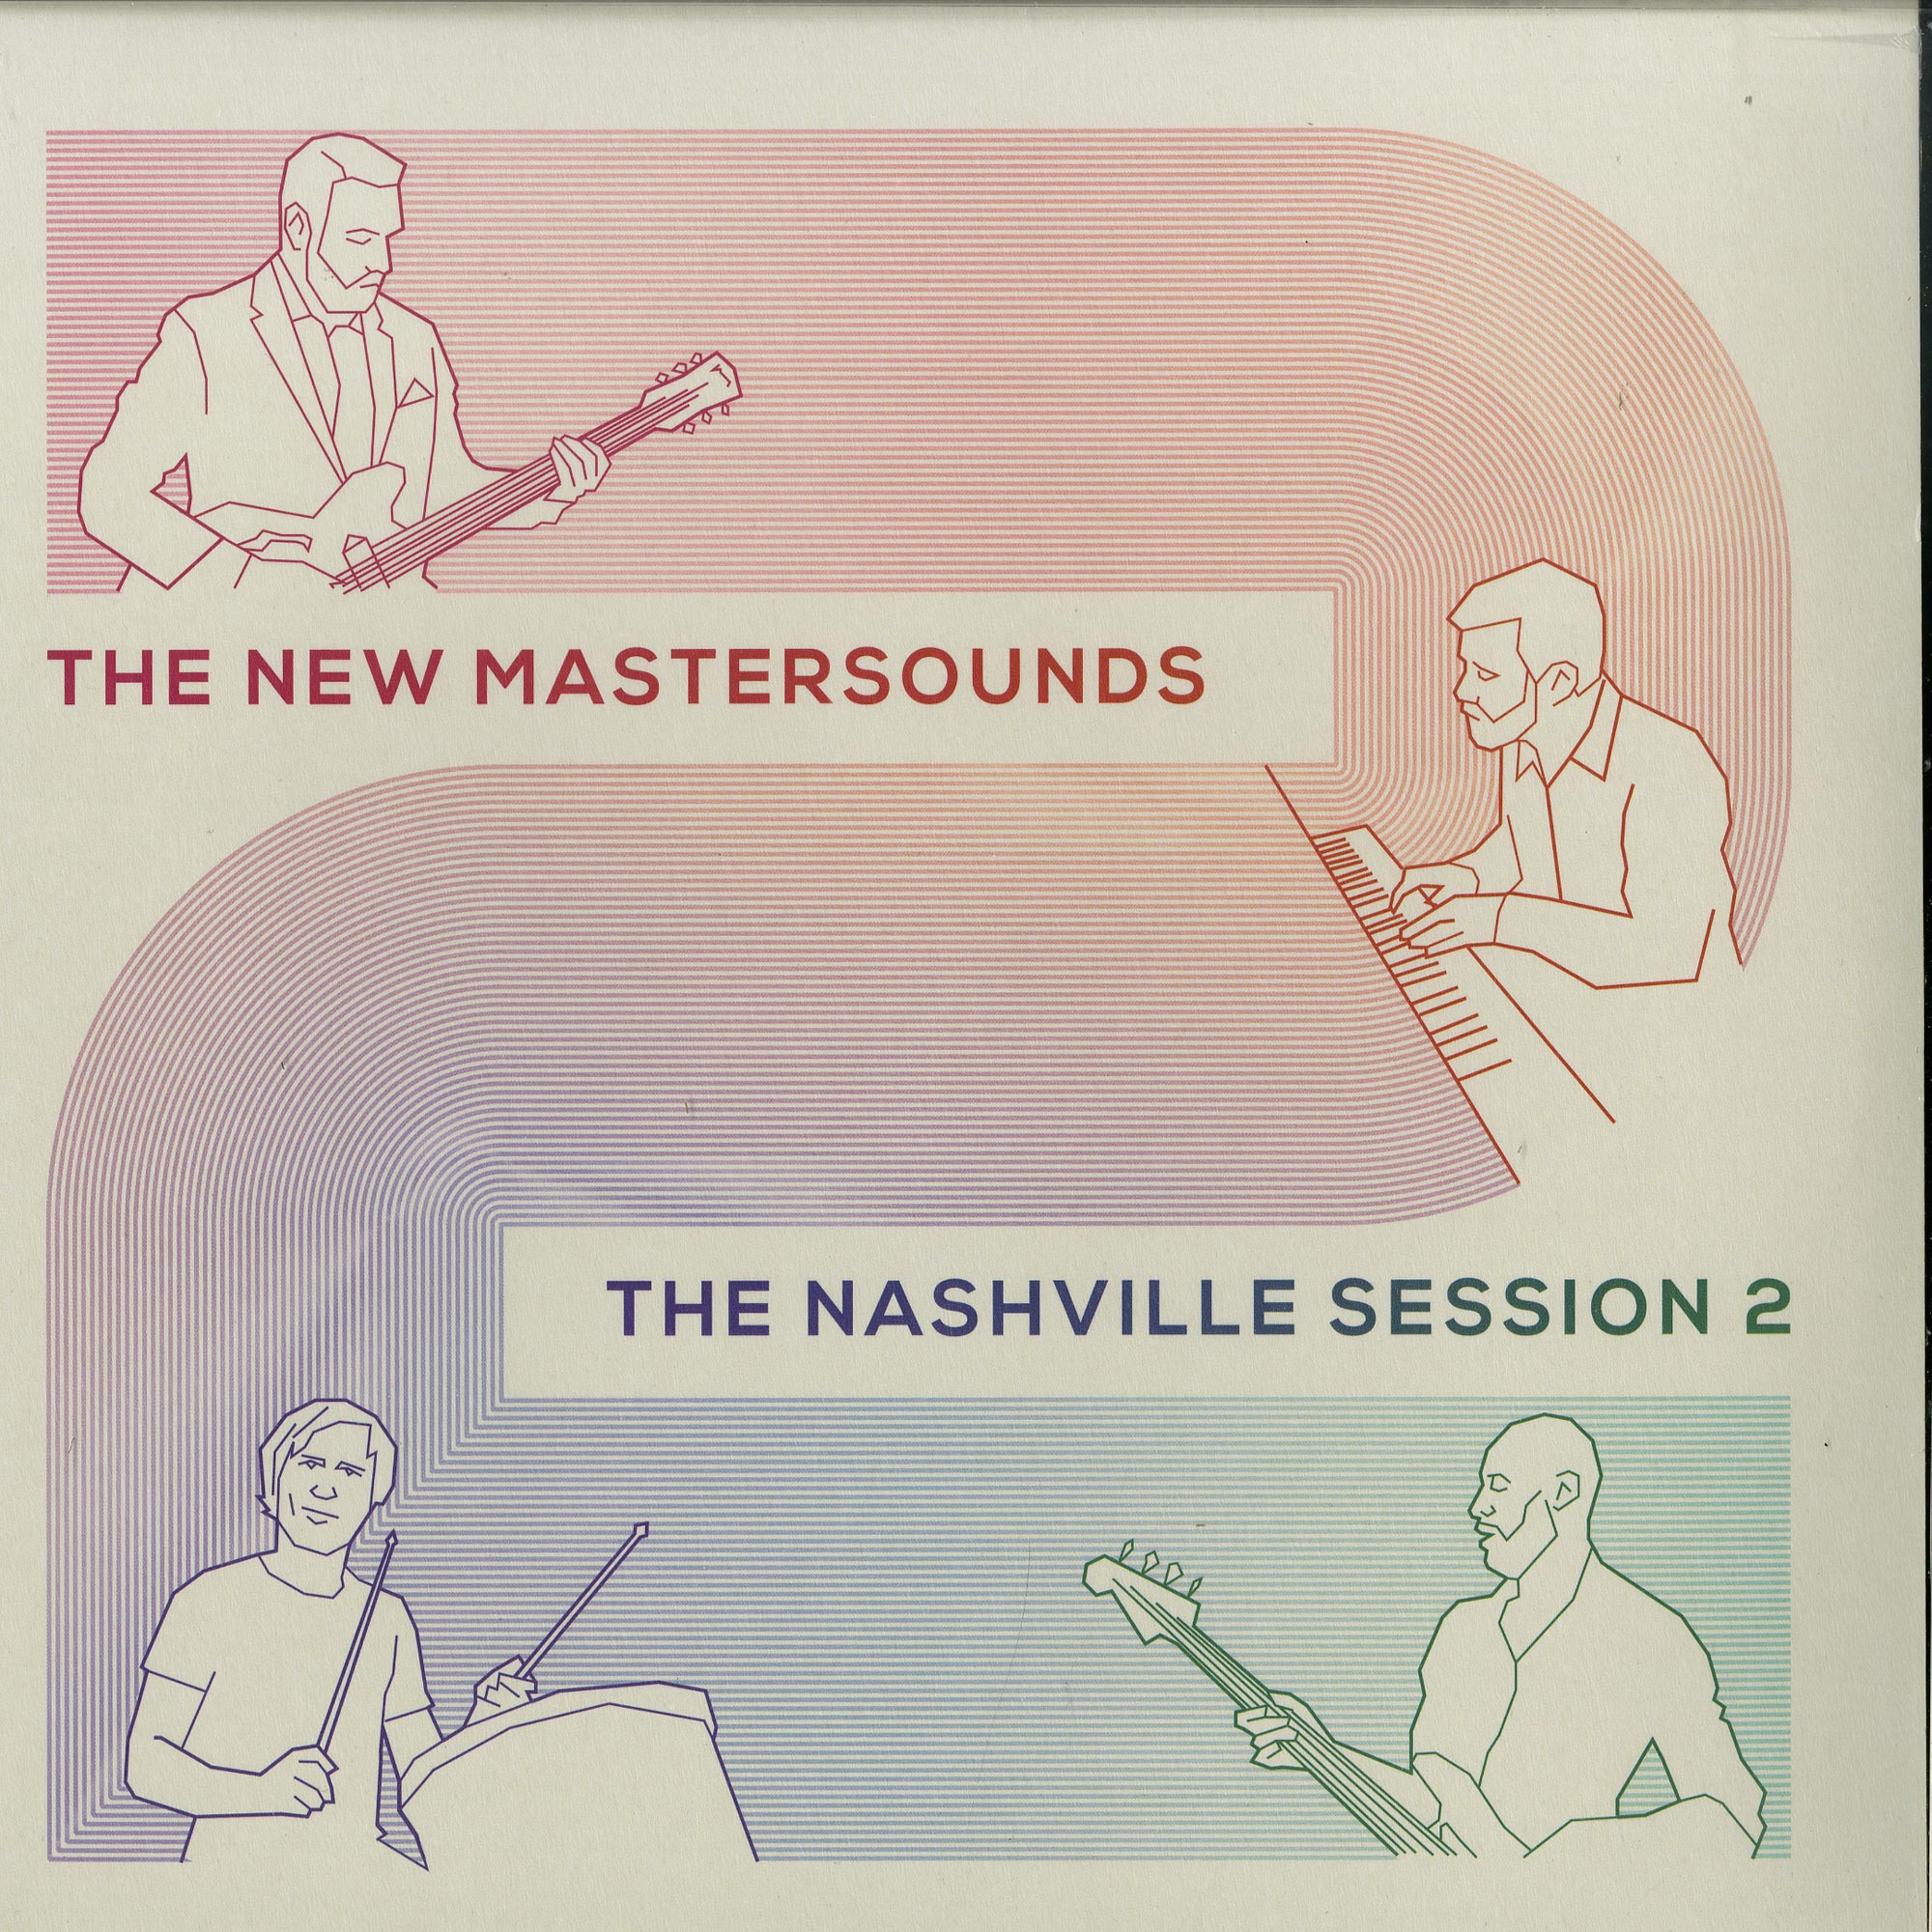 The New Mastersounds - THE NASHVILLE SESSION 2